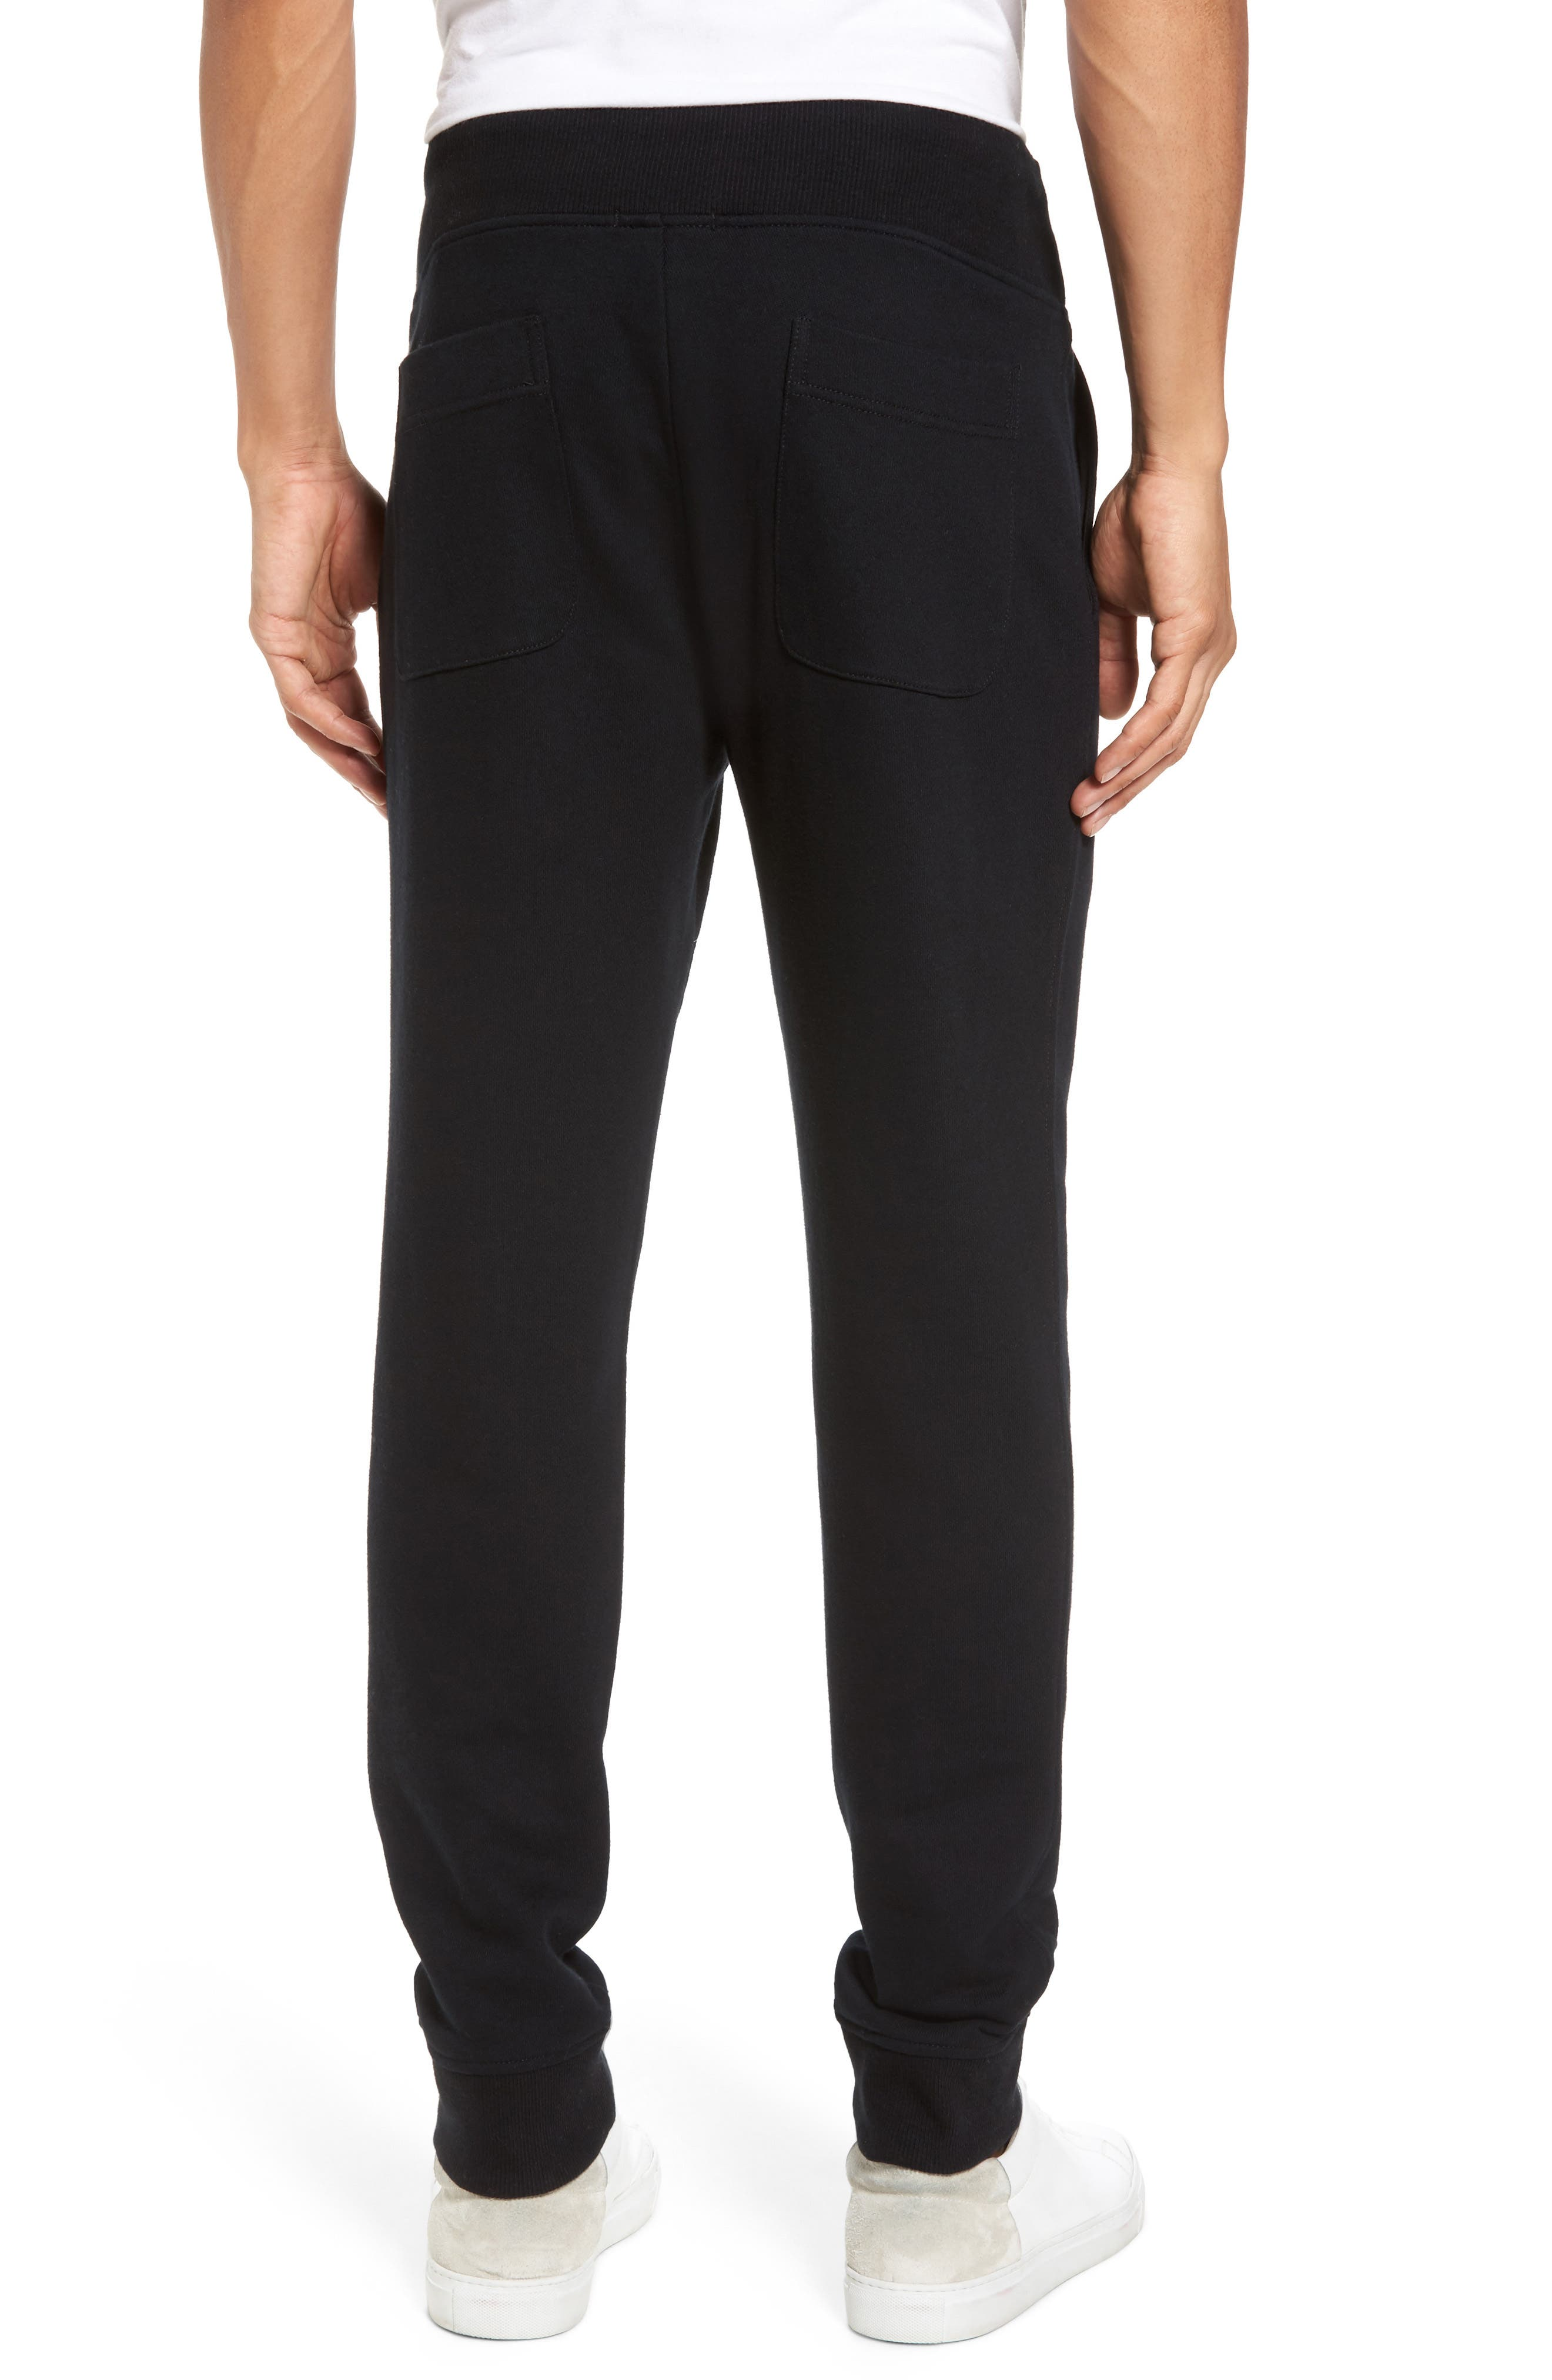 French Terry Regular Fit Sweatpants,                             Alternate thumbnail 2, color,                             001